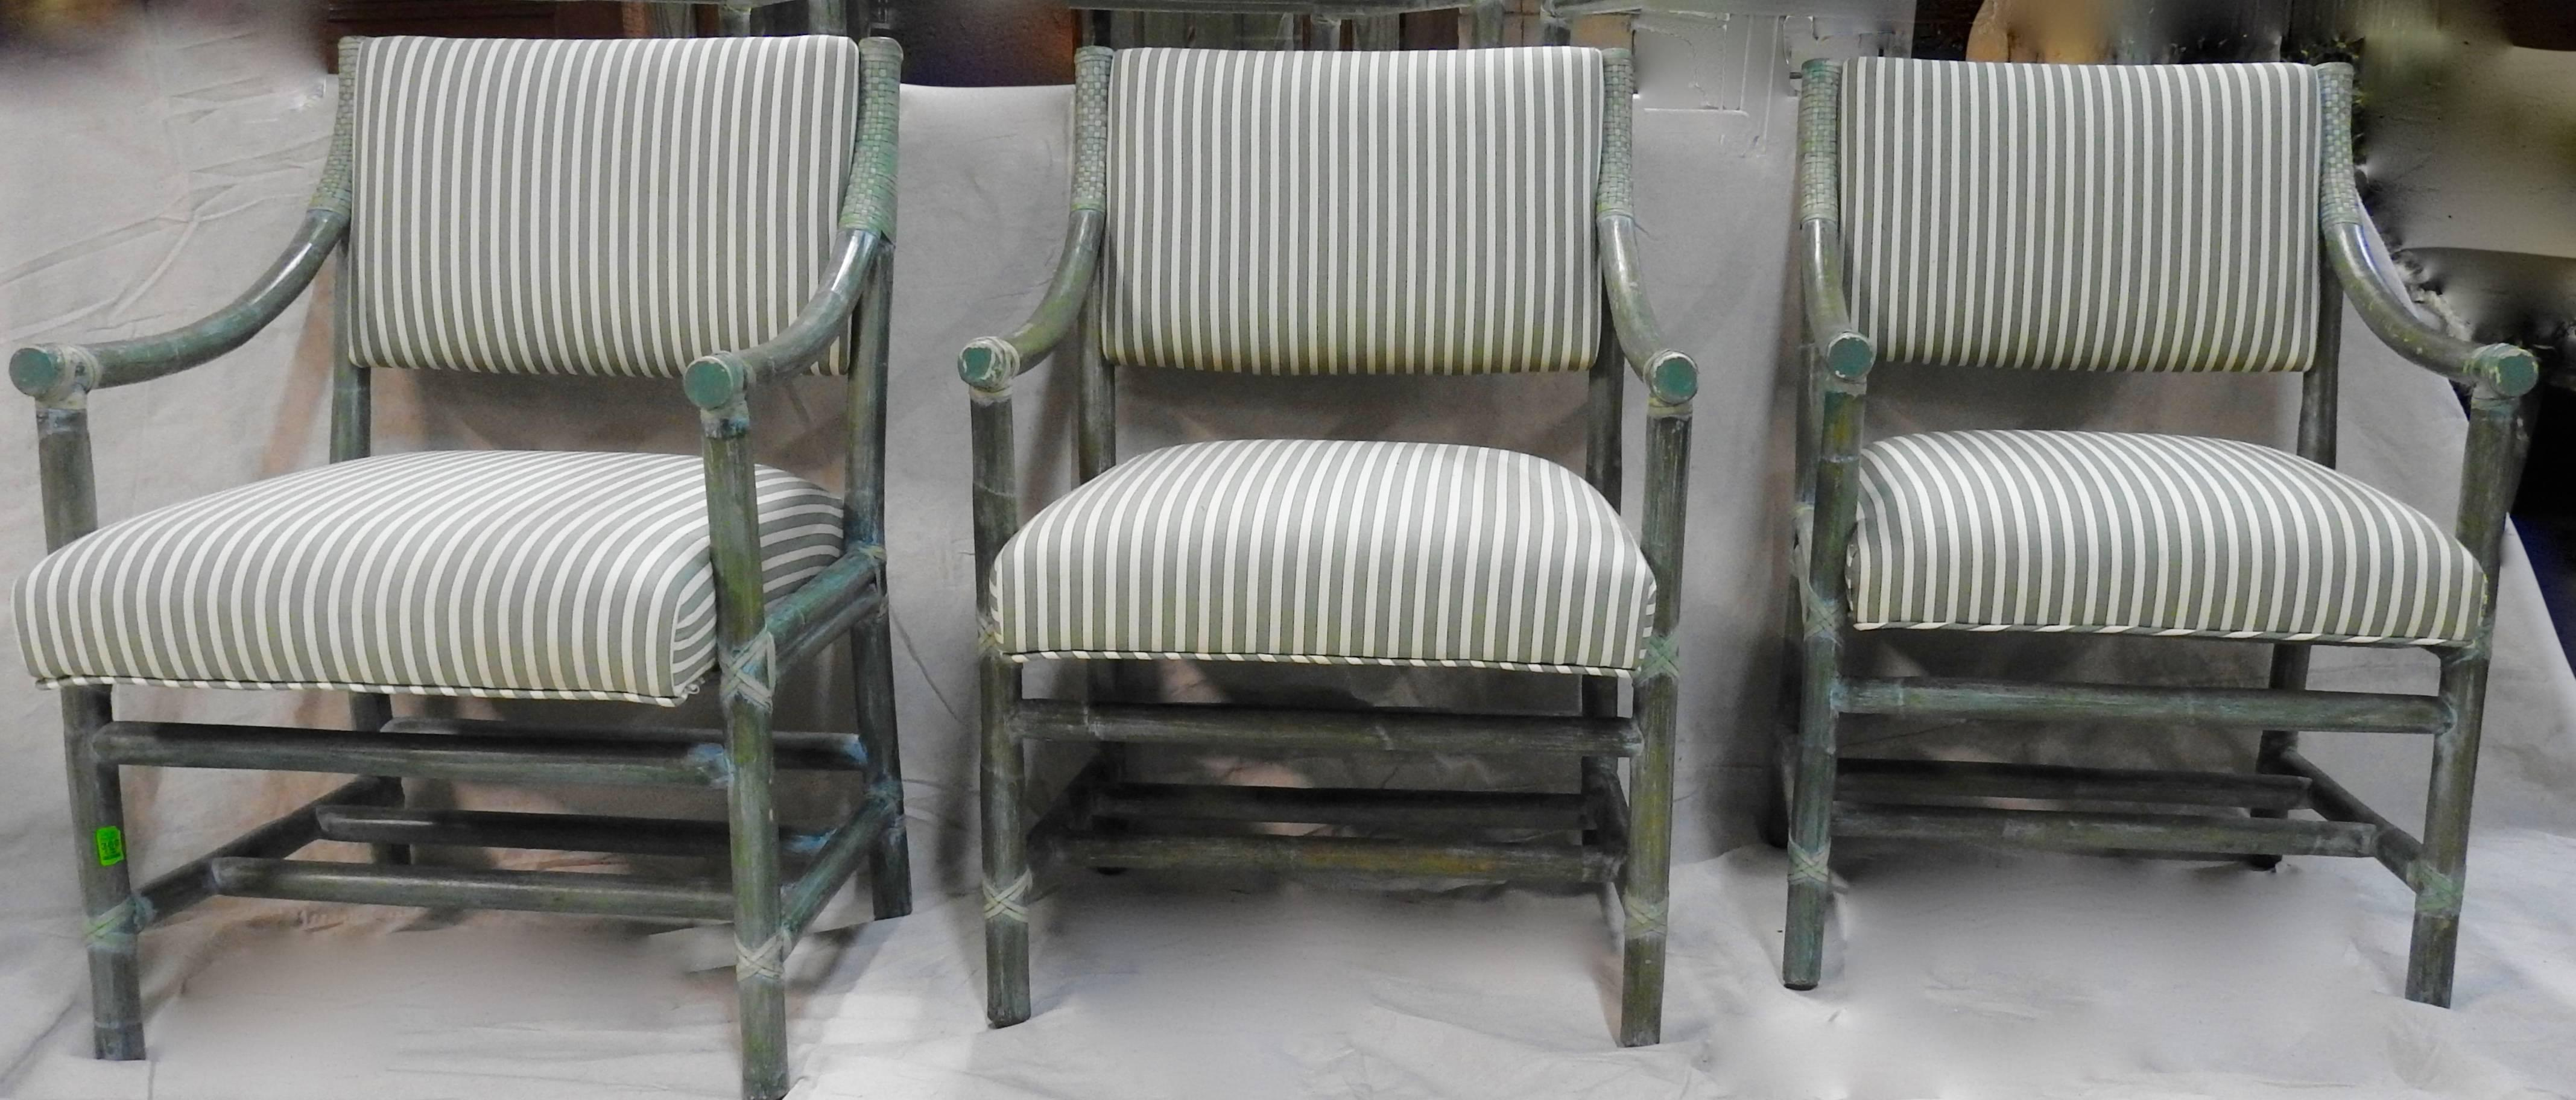 Featured Is A Superb Group Of Six Green Rattan Armchairs From McGuire  Furniture Of San Francisco